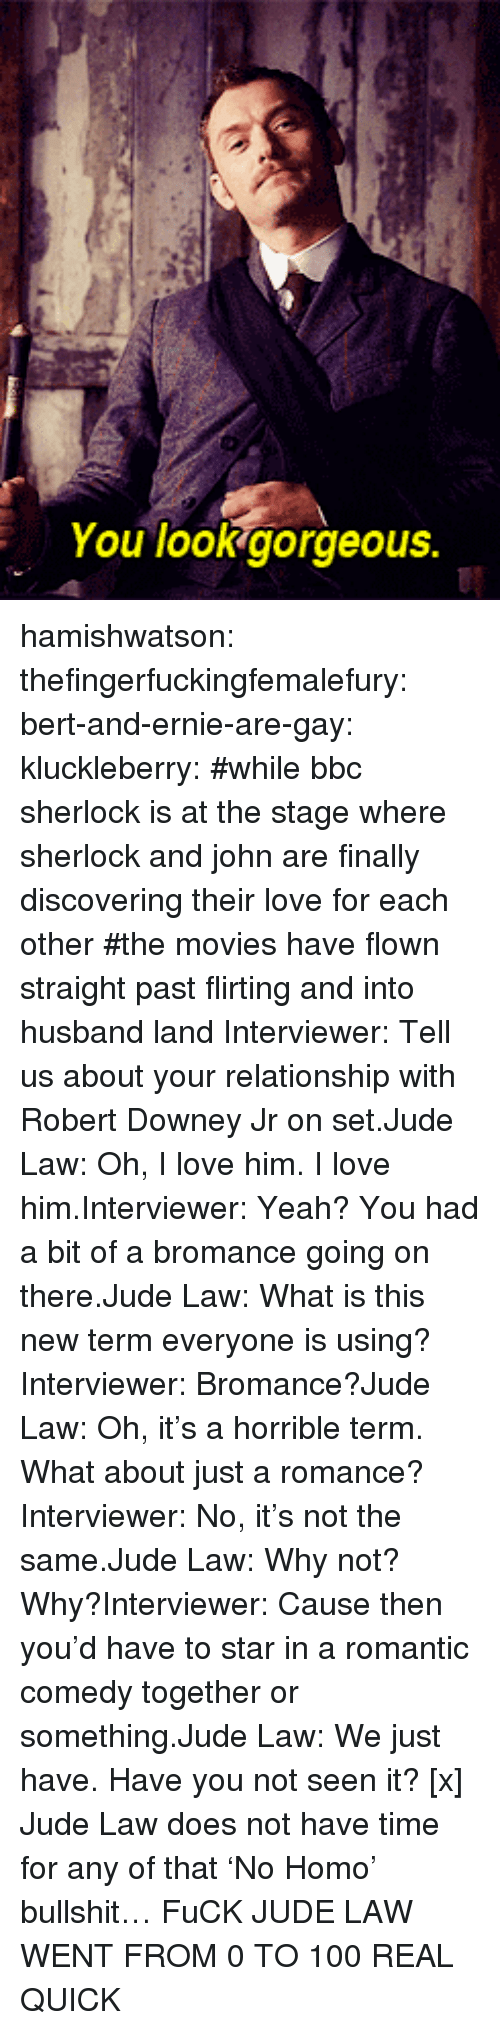 0 to 100, Anaconda, and Love: You lookgorgeous. hamishwatson: thefingerfuckingfemalefury:  bert-and-ernie-are-gay:  kluckleberry: #while bbc sherlock is at the stage where sherlock and john are finally discovering their love for each other#the movies have flown straight past flirting and into husband land Interviewer: Tell us about your relationship with Robert Downey Jr on set.Jude Law: Oh, I love him. I love him.Interviewer: Yeah? You had a bit of a bromance going on there.Jude Law: What is this new term everyone is using?Interviewer: Bromance?Jude Law: Oh, it's a horrible term. What about just a romance?Interviewer: No, it's not the same.Jude Law: Why not? Why?Interviewer: Cause then you'd have to star in a romantic comedy together or something.Jude Law: We just have. Have you not seen it? [x]  Jude Law does not have time for any of that 'No Homo' bullshit…  FuCK JUDE LAW WENT FROM 0 TO 100 REAL QUICK